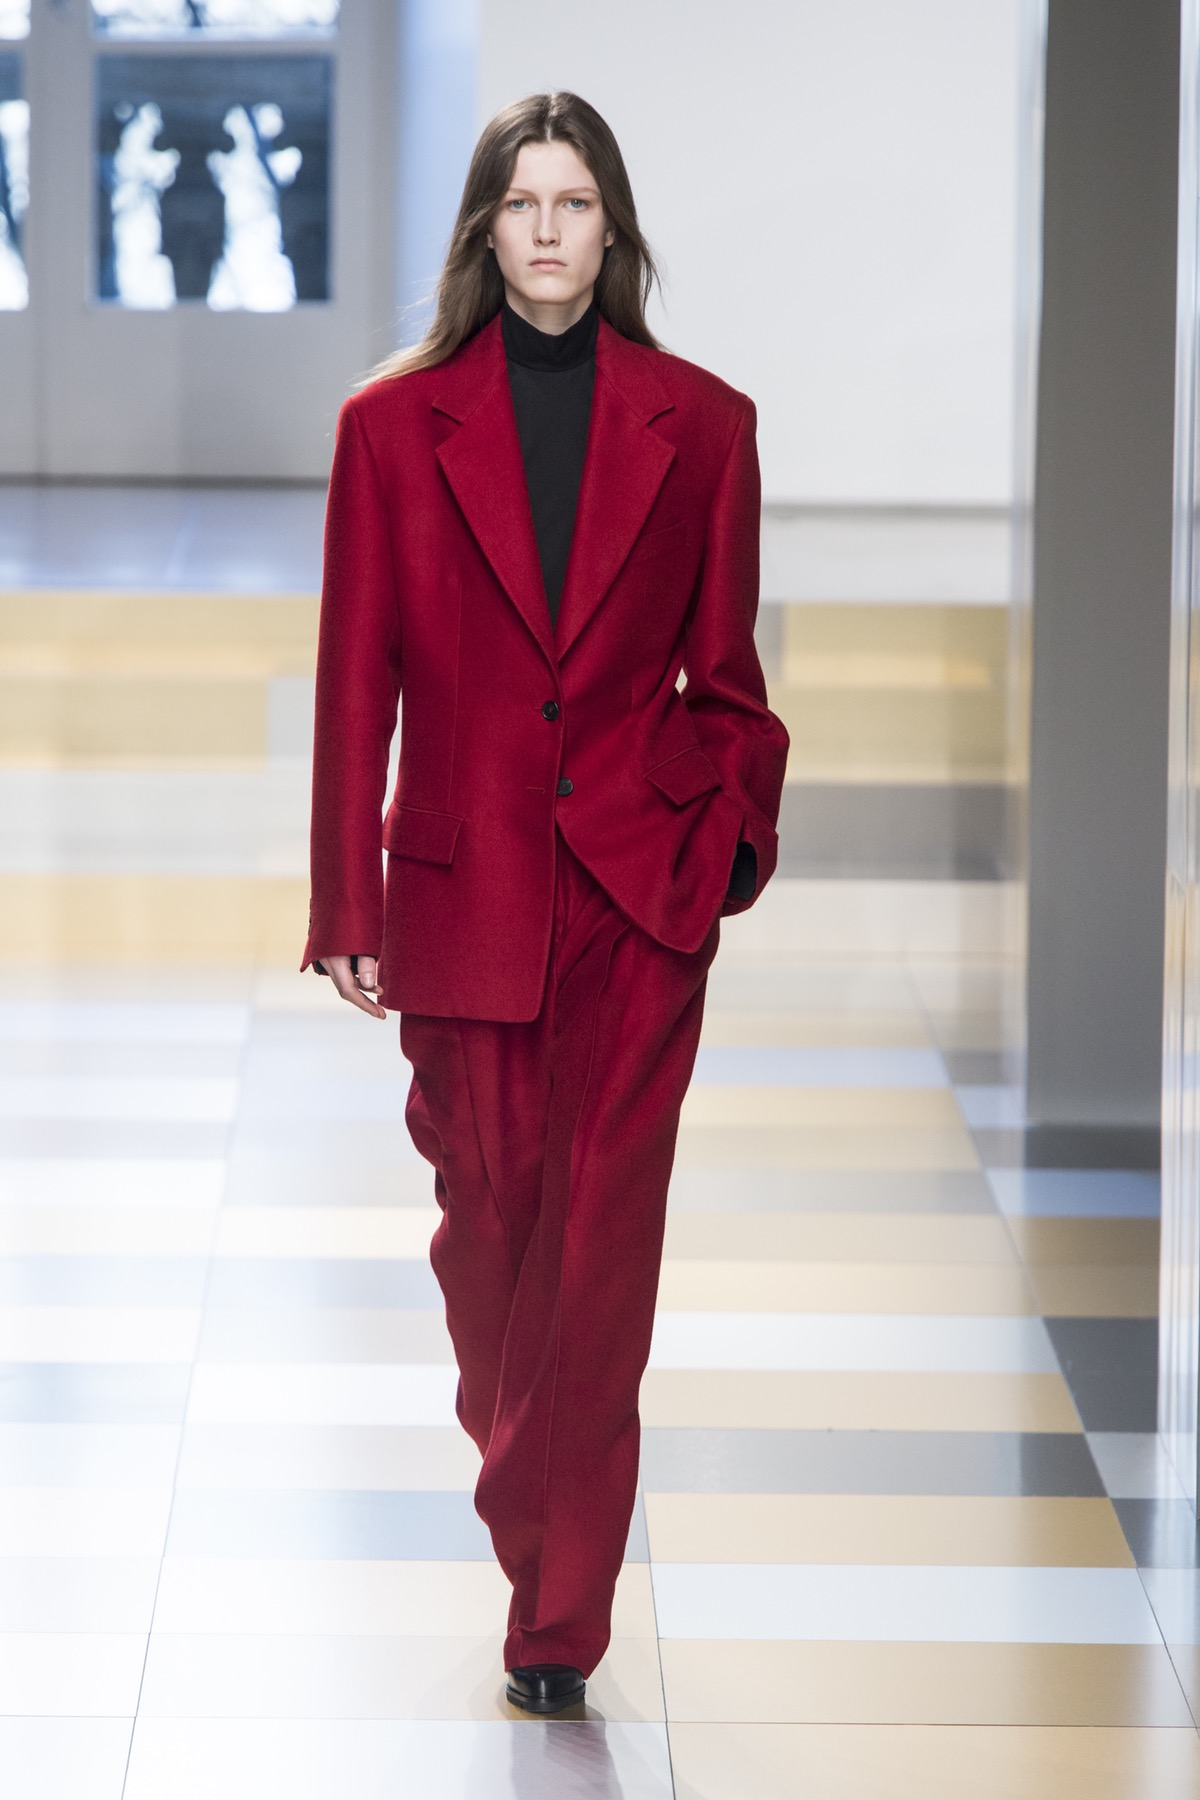 Trends : The Power Of Red, Jil Sander AW17 image via BOF